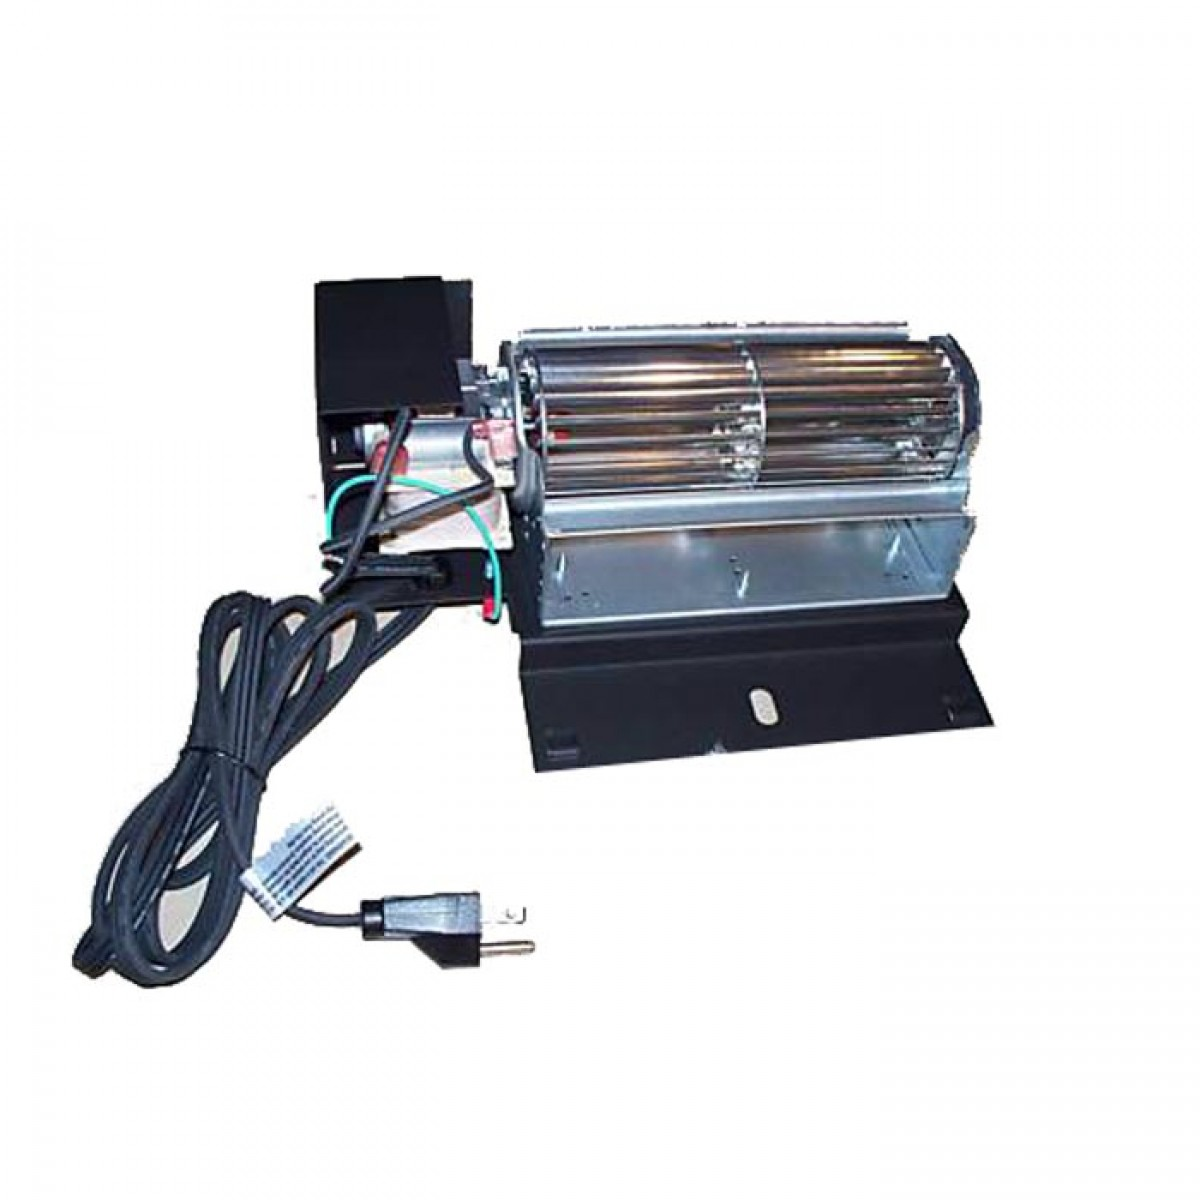 Napoleon NZ64 Air circulating blower system at iBuyFireplaces #477384